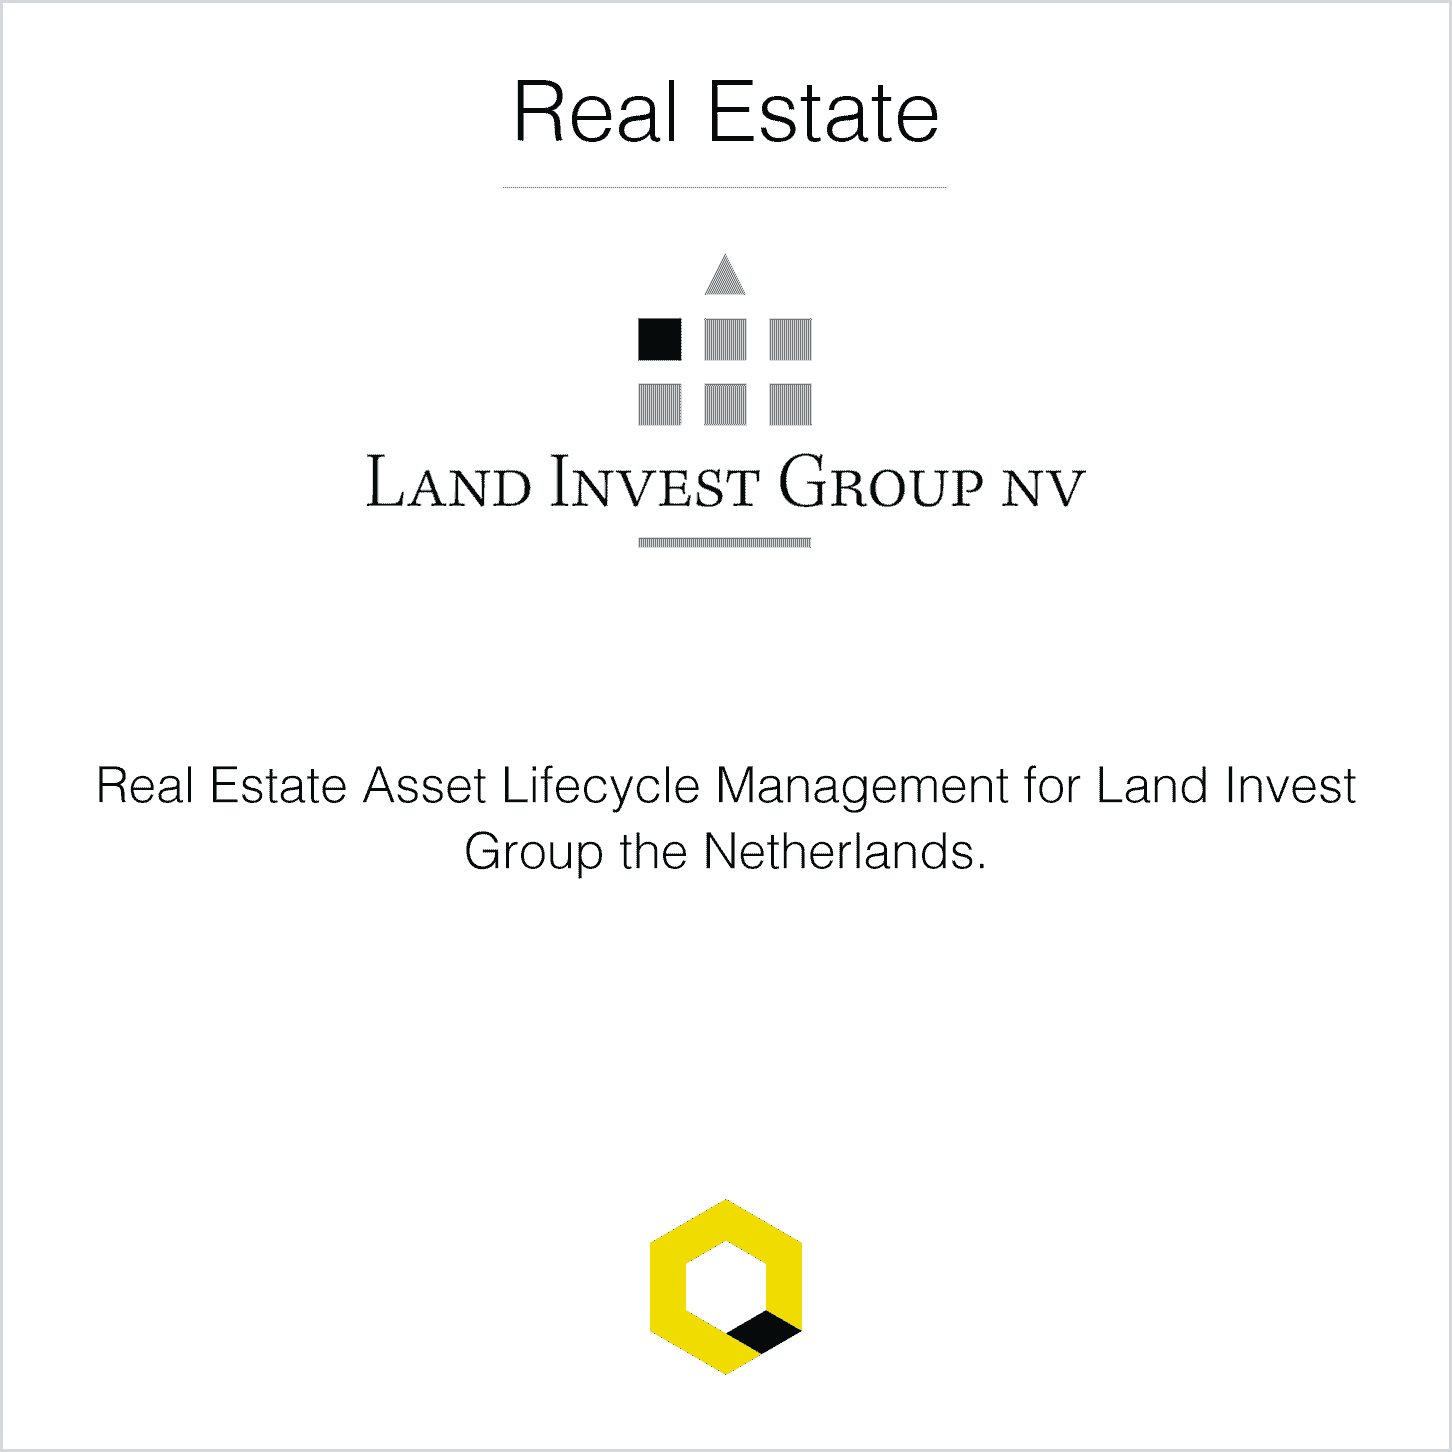 Tombstone Land Invest Group Company